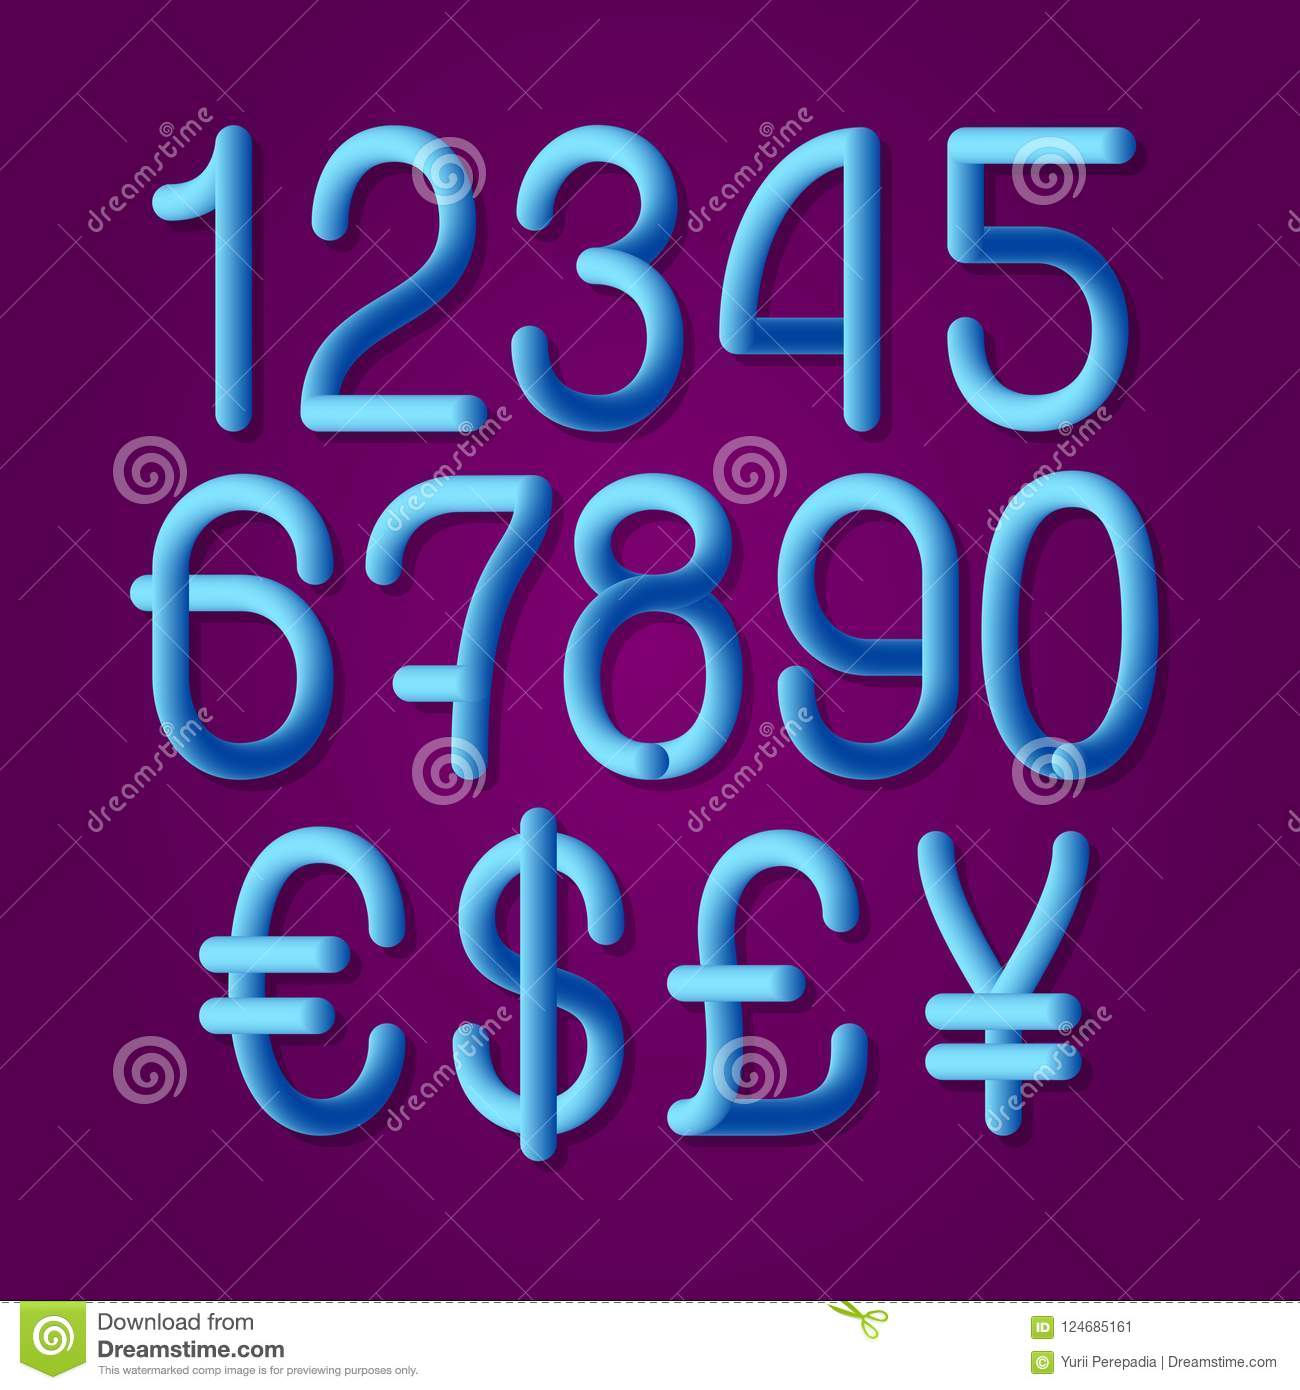 Luminous Tubular Numbers With Currency Signs Of American Dollar